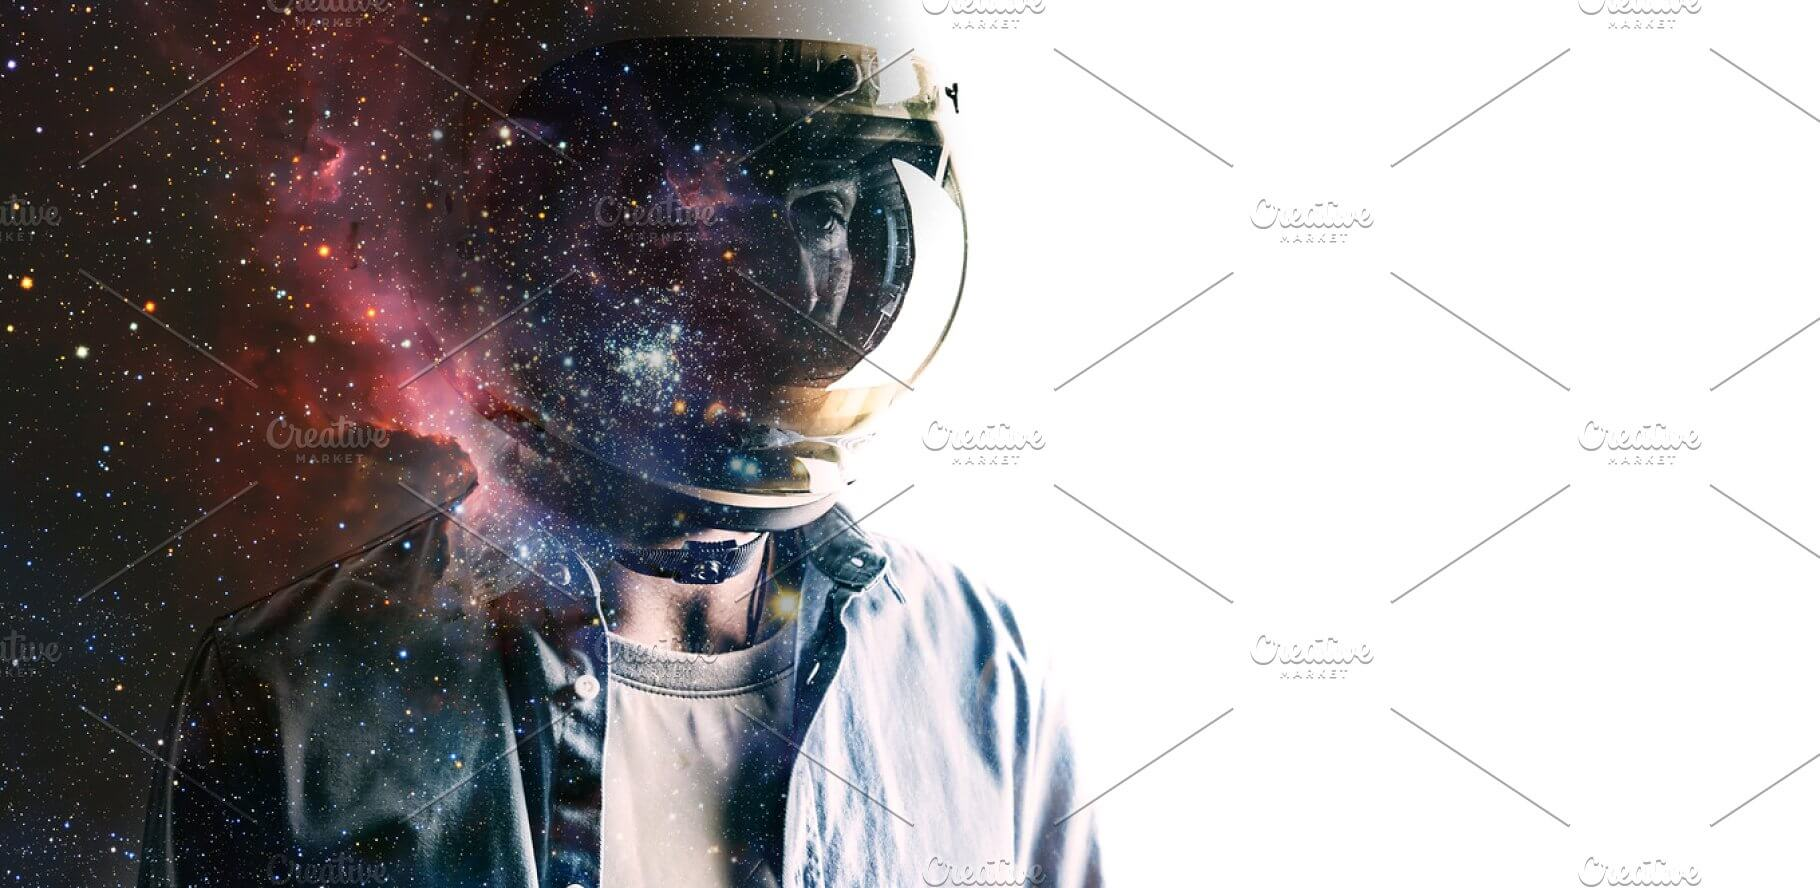 Man In Helmet with Starry Sky Background PSD Mockup